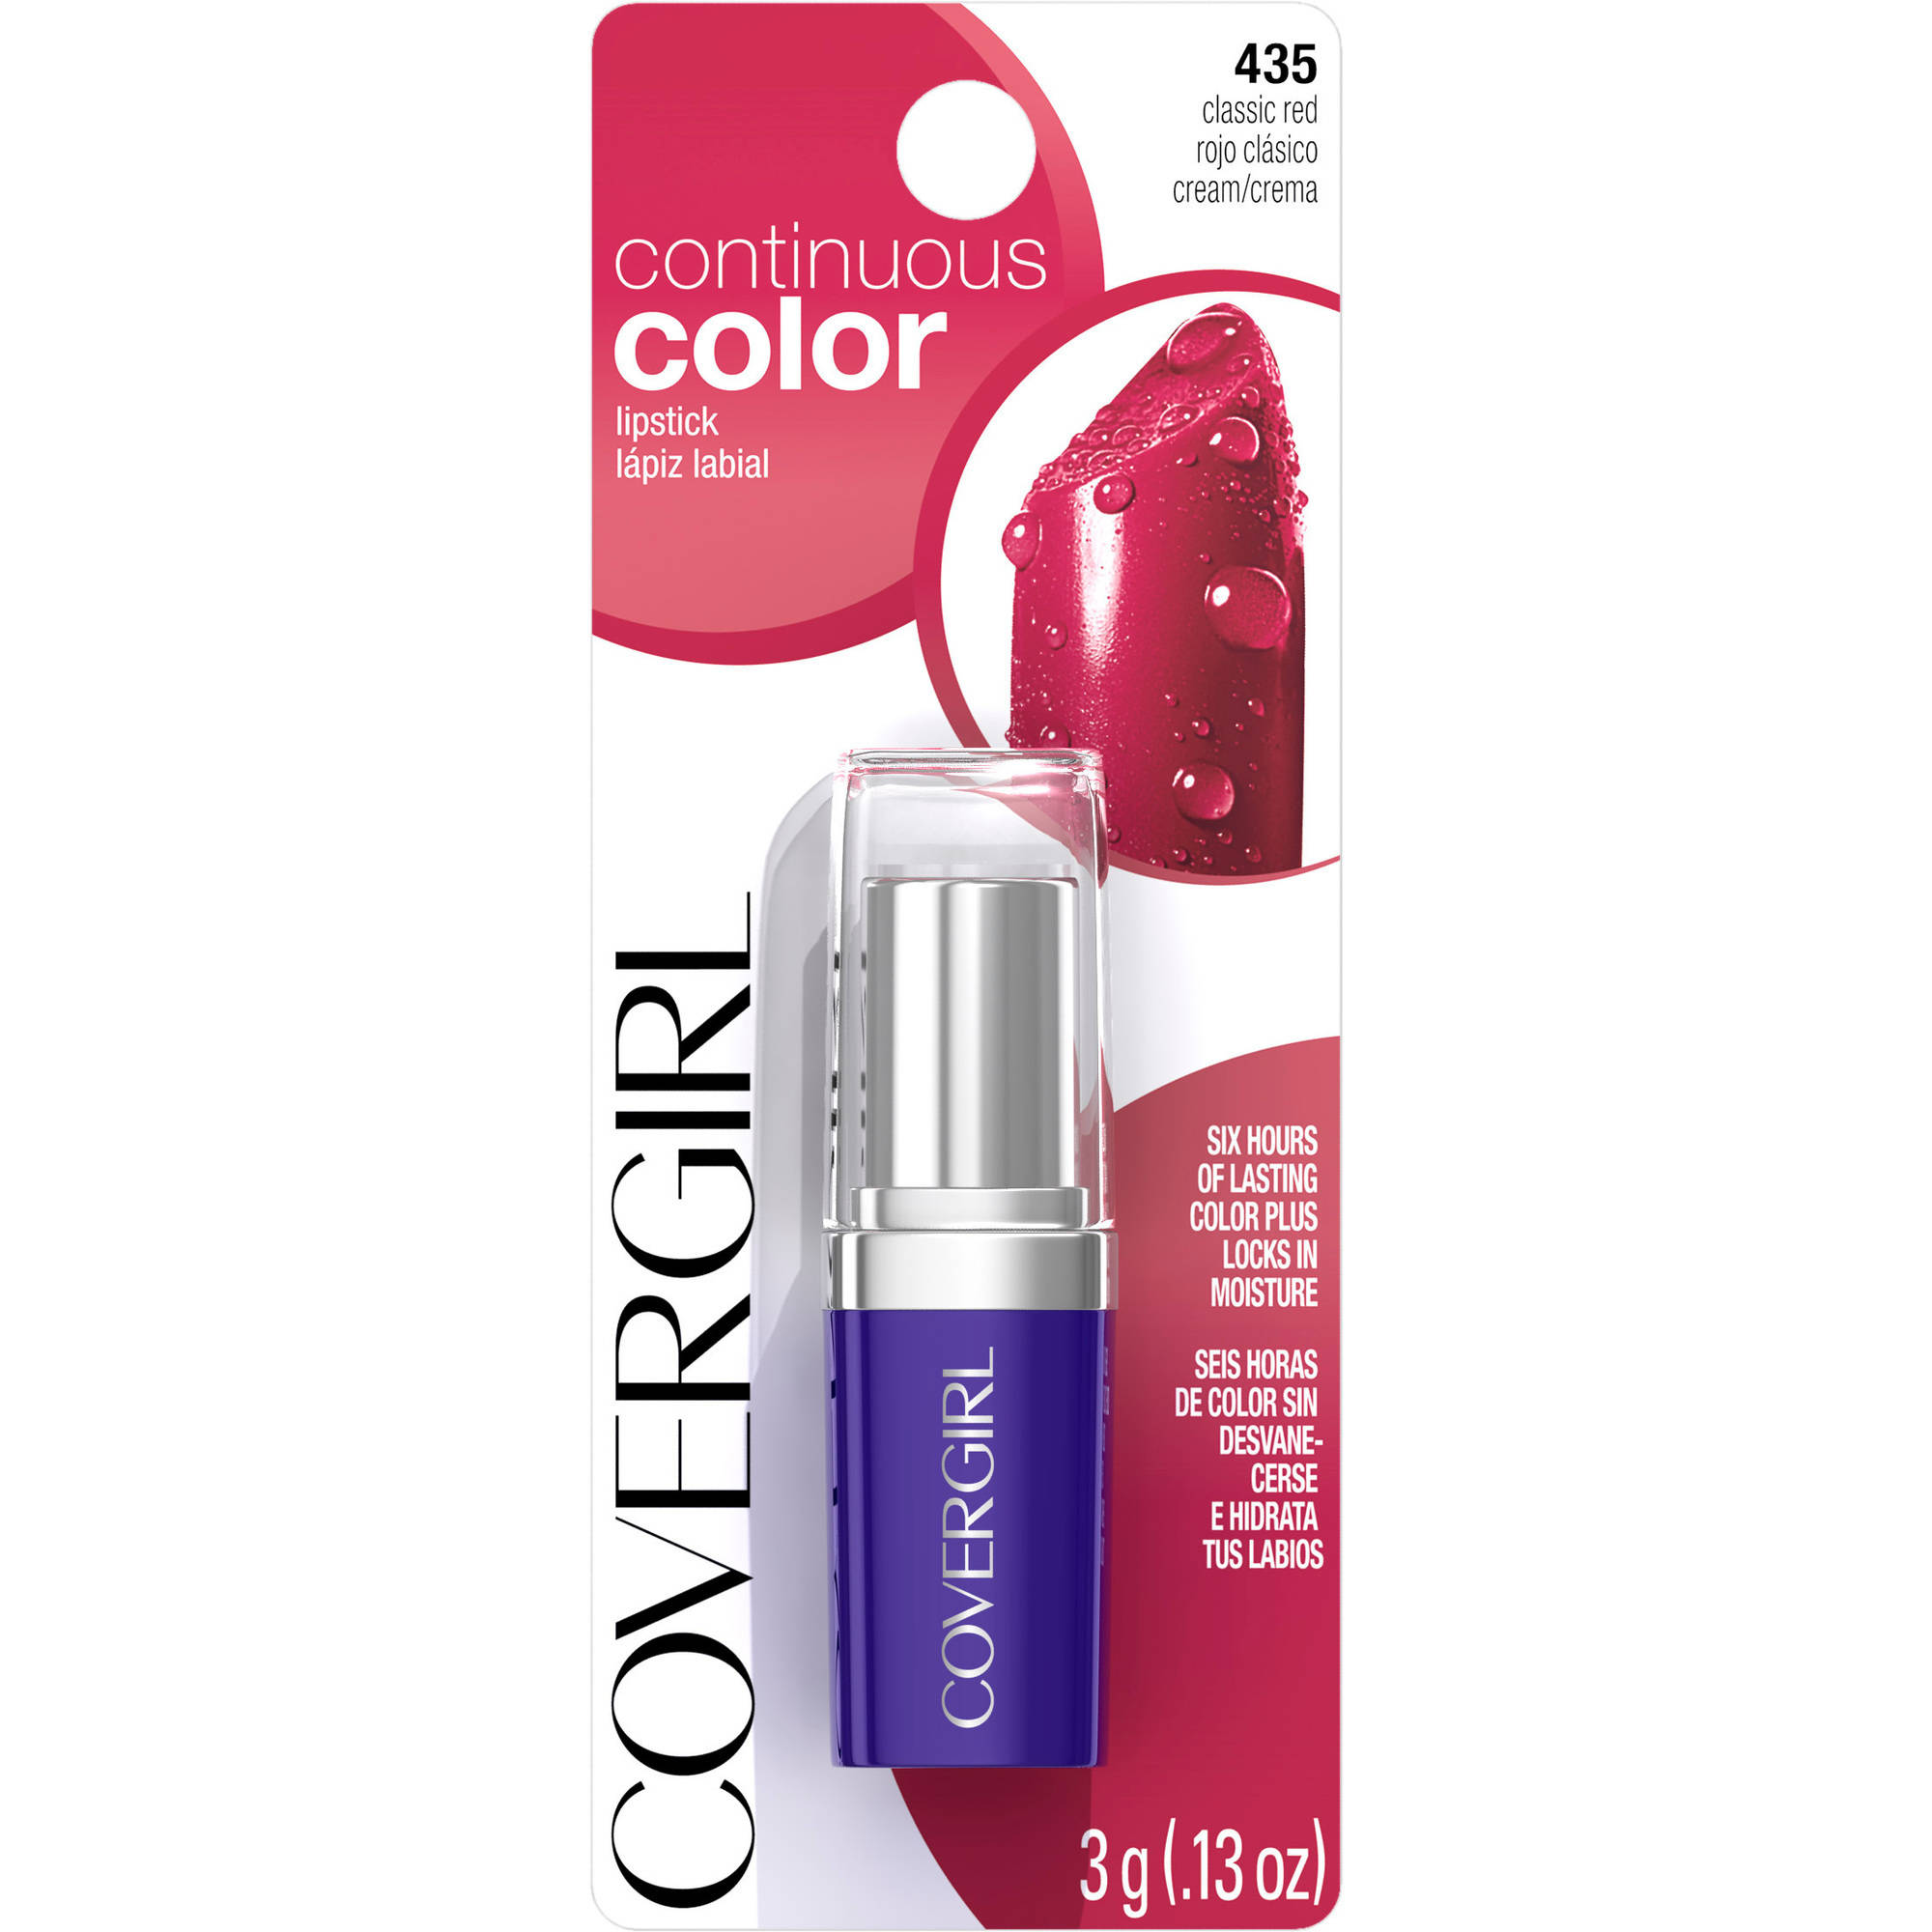 COVERGIRL Continuous Color Lipstick Classic Red 435, 0.13 oz